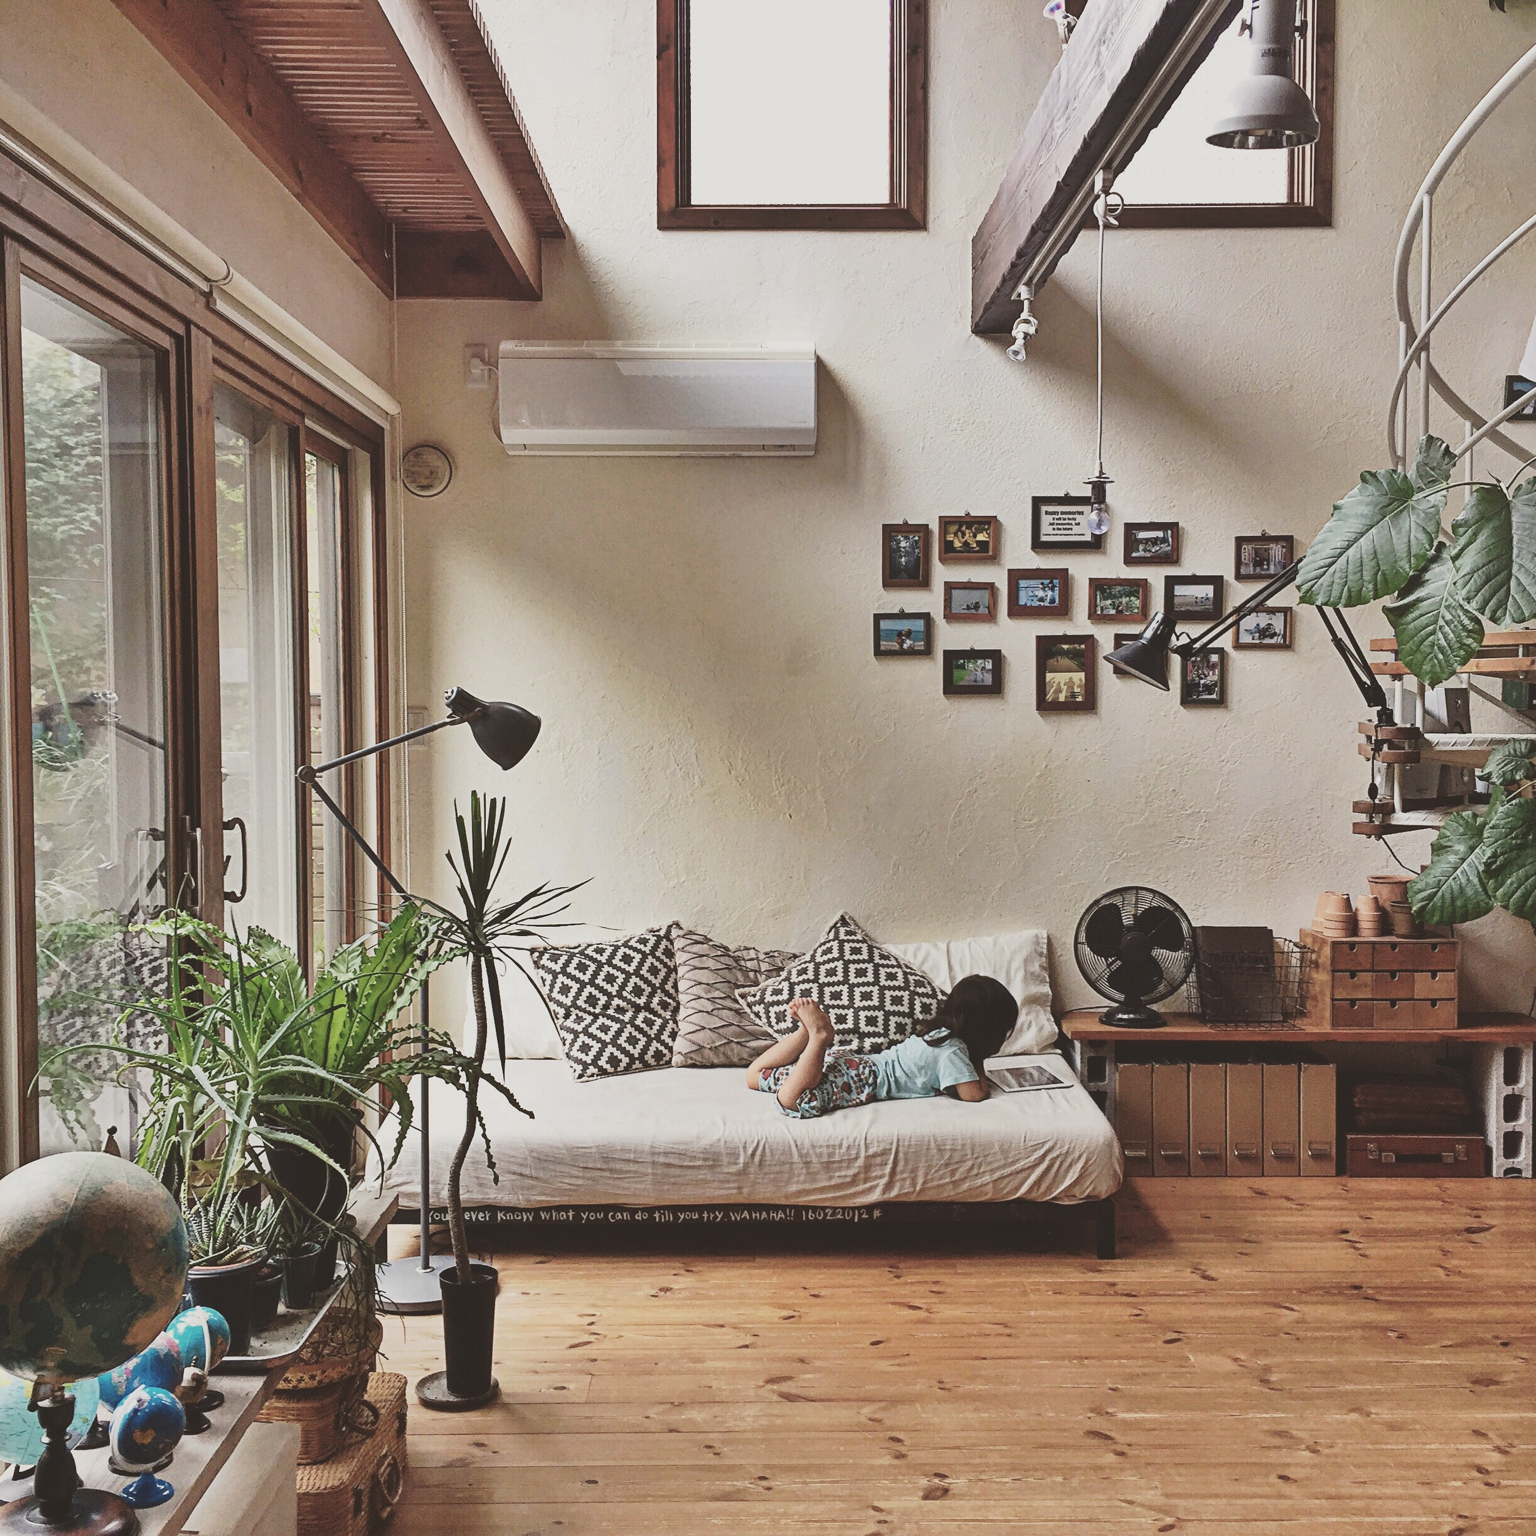 Moon to moon an earthy japanese home - Cool home decor websites model ...